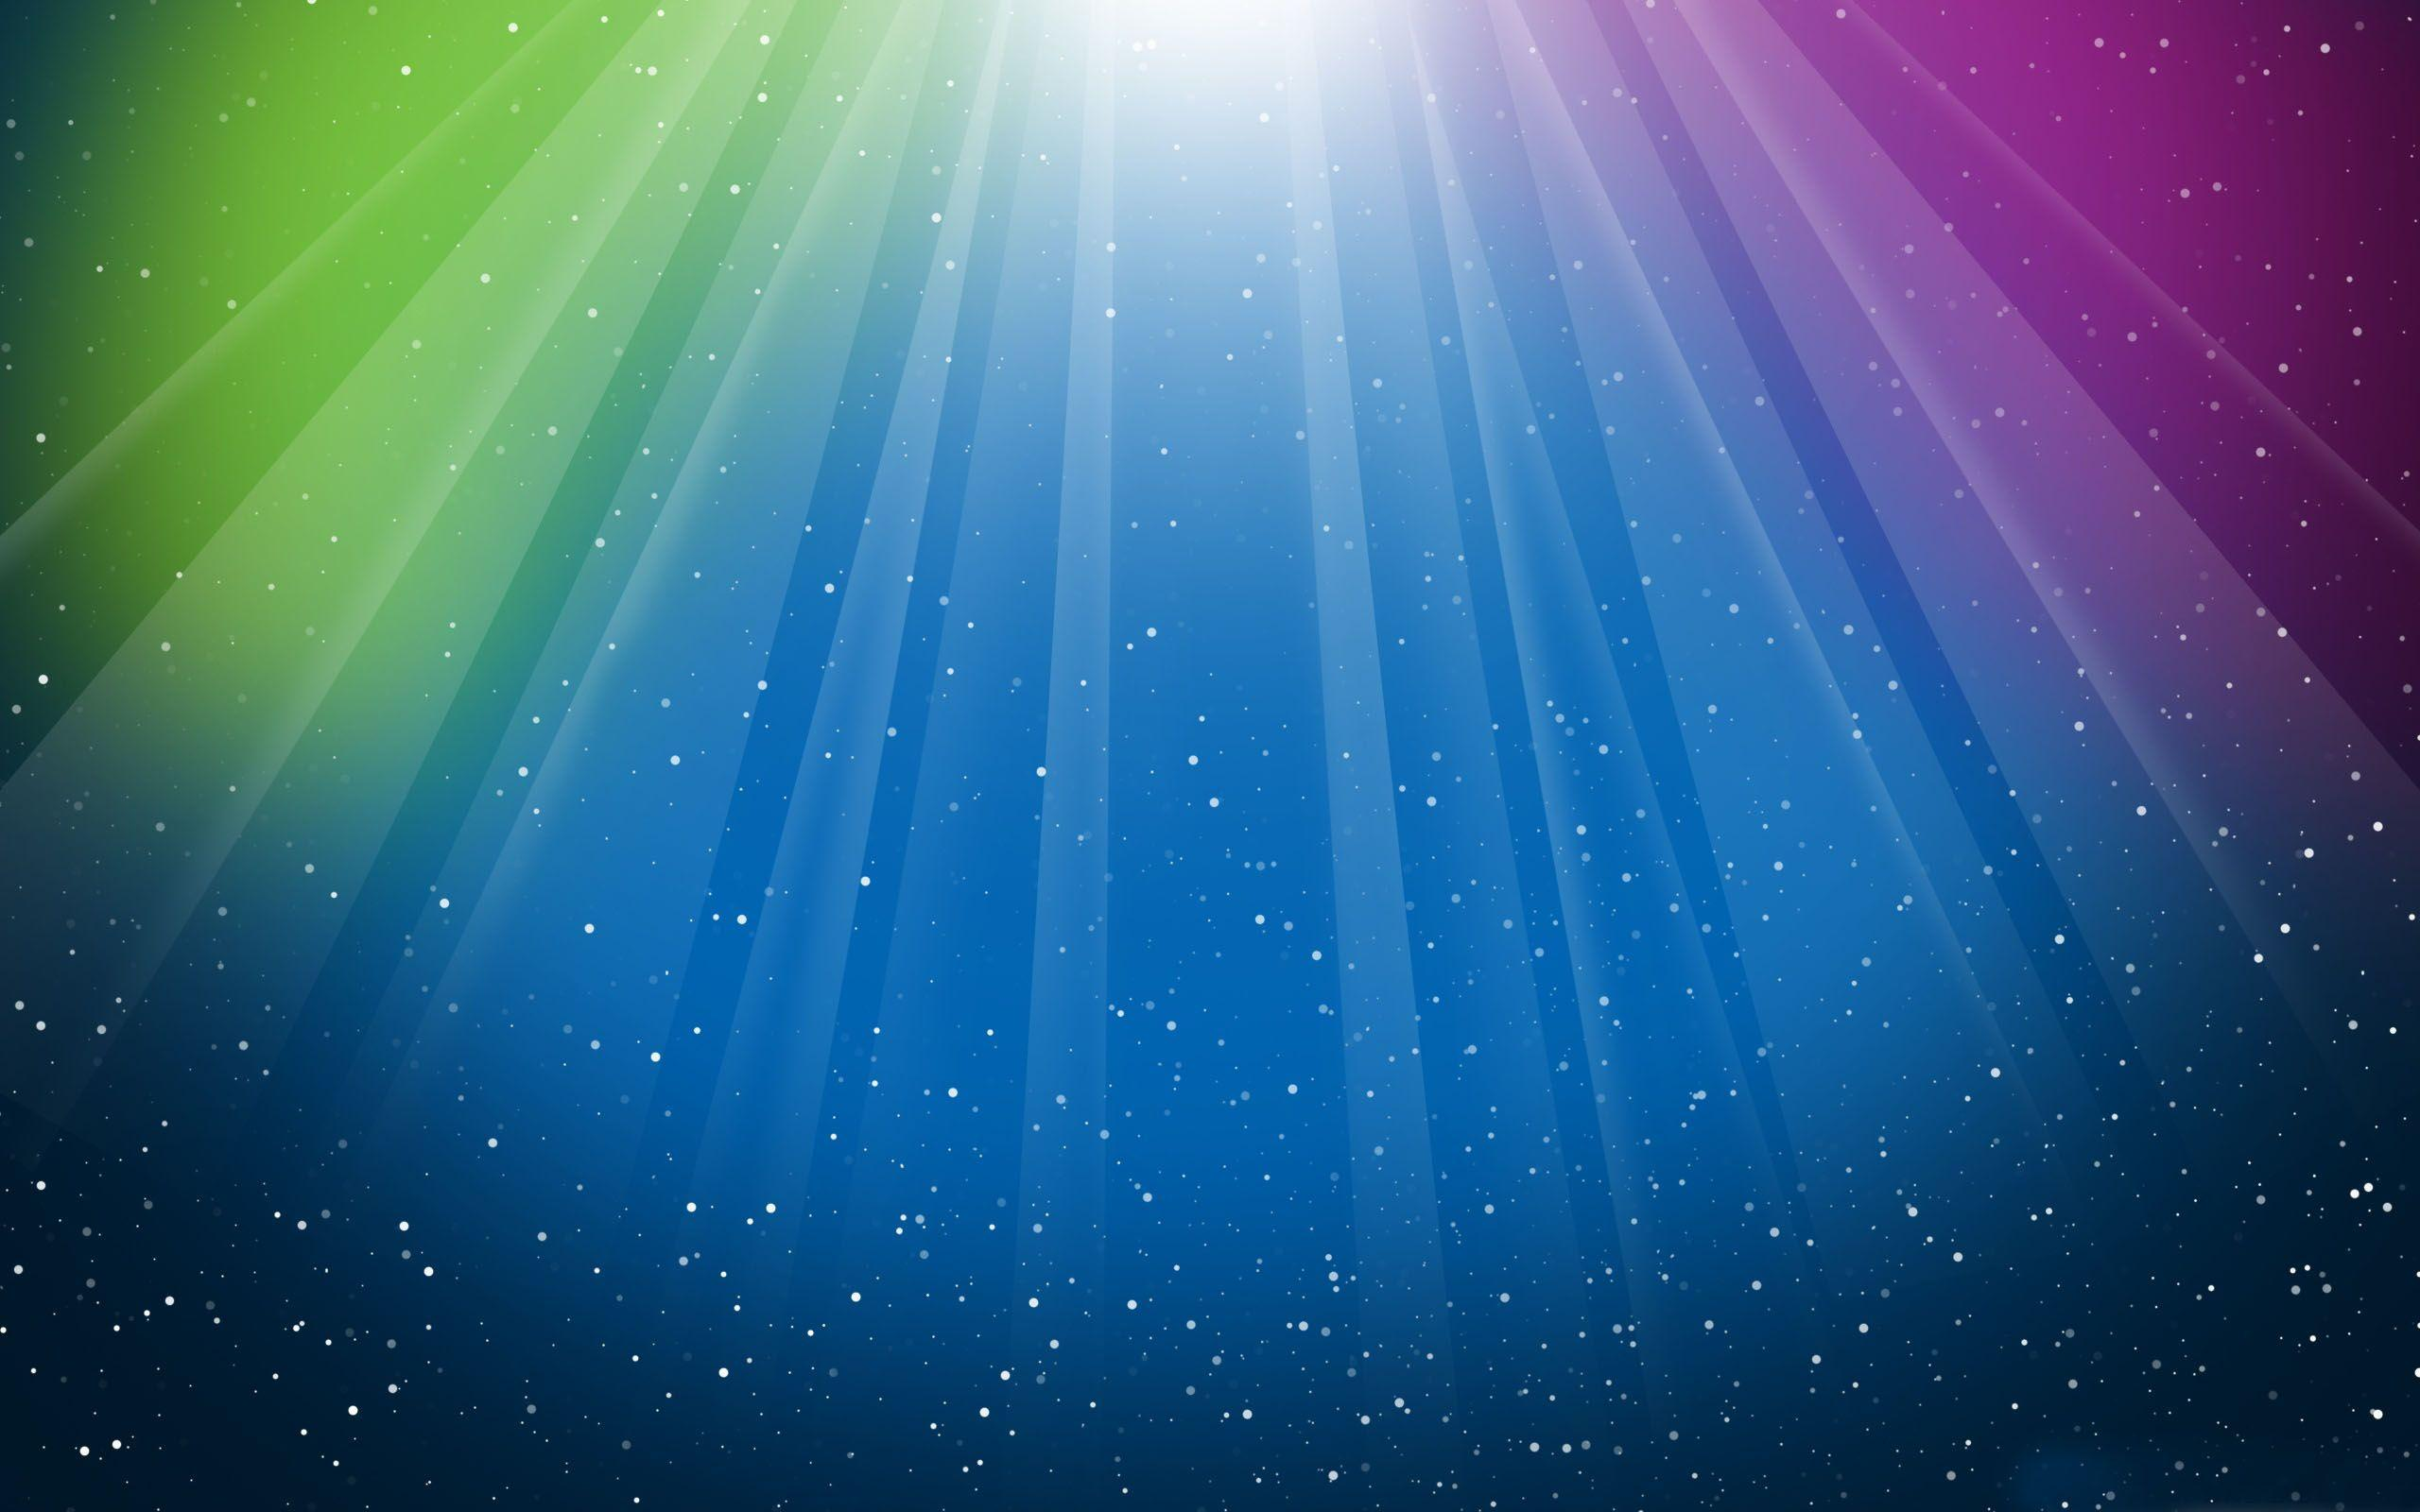 Blue And Purple Backgrounds - Wallpaper Cave